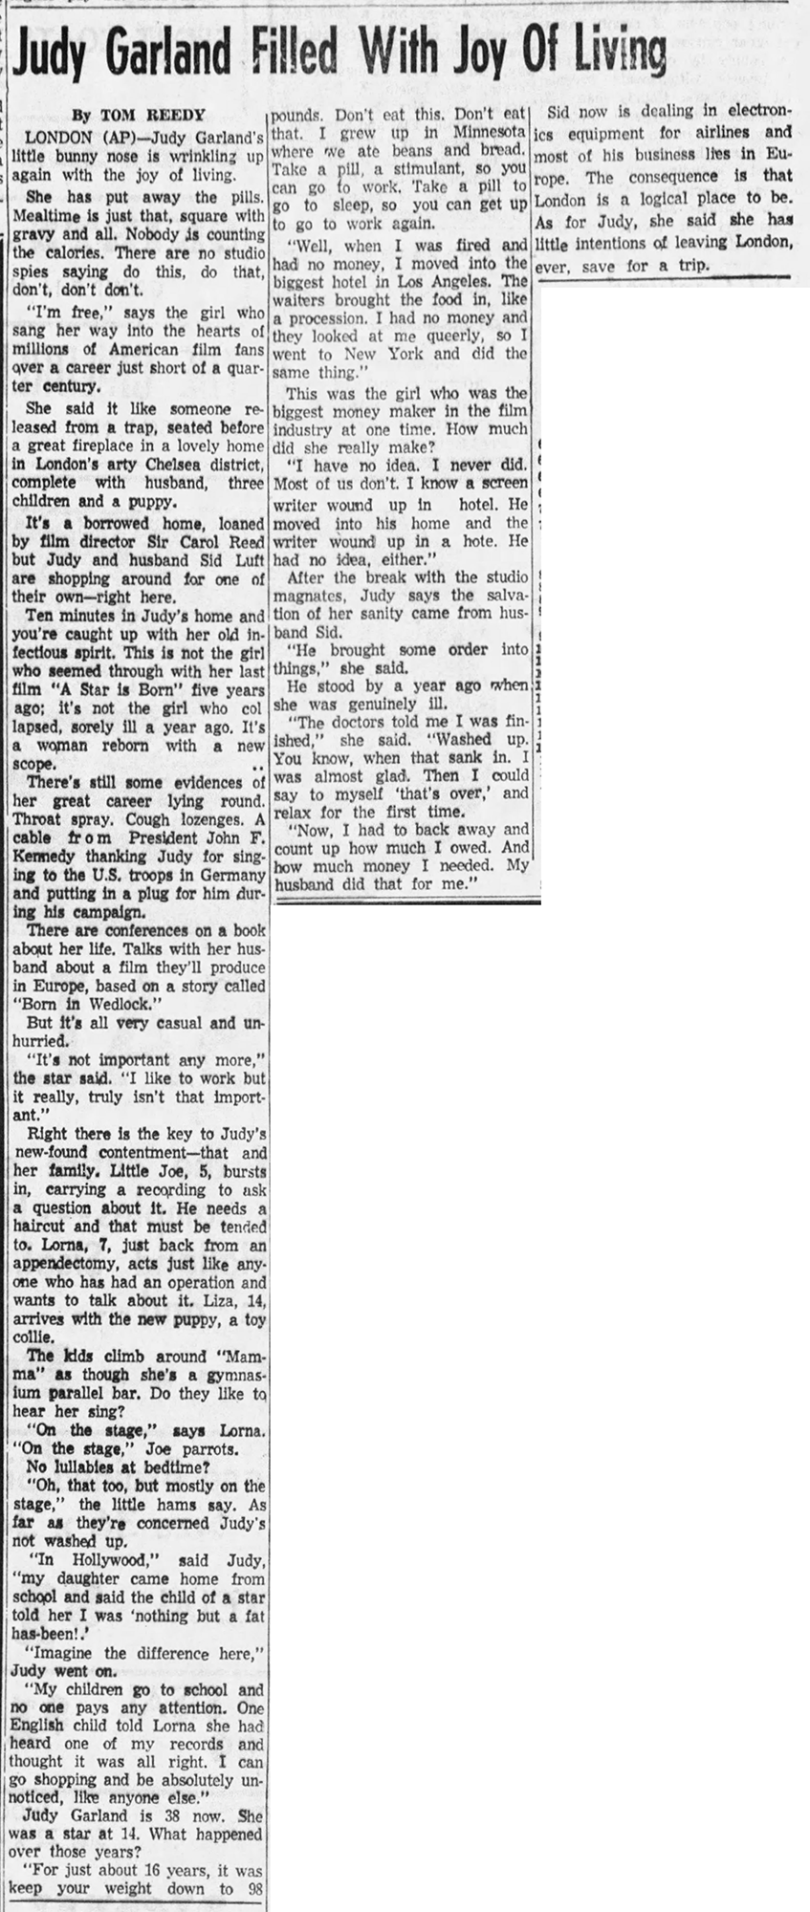 january-19,-1961-joy-of-living-the_times_and_democrat-(orangeburg-sc)